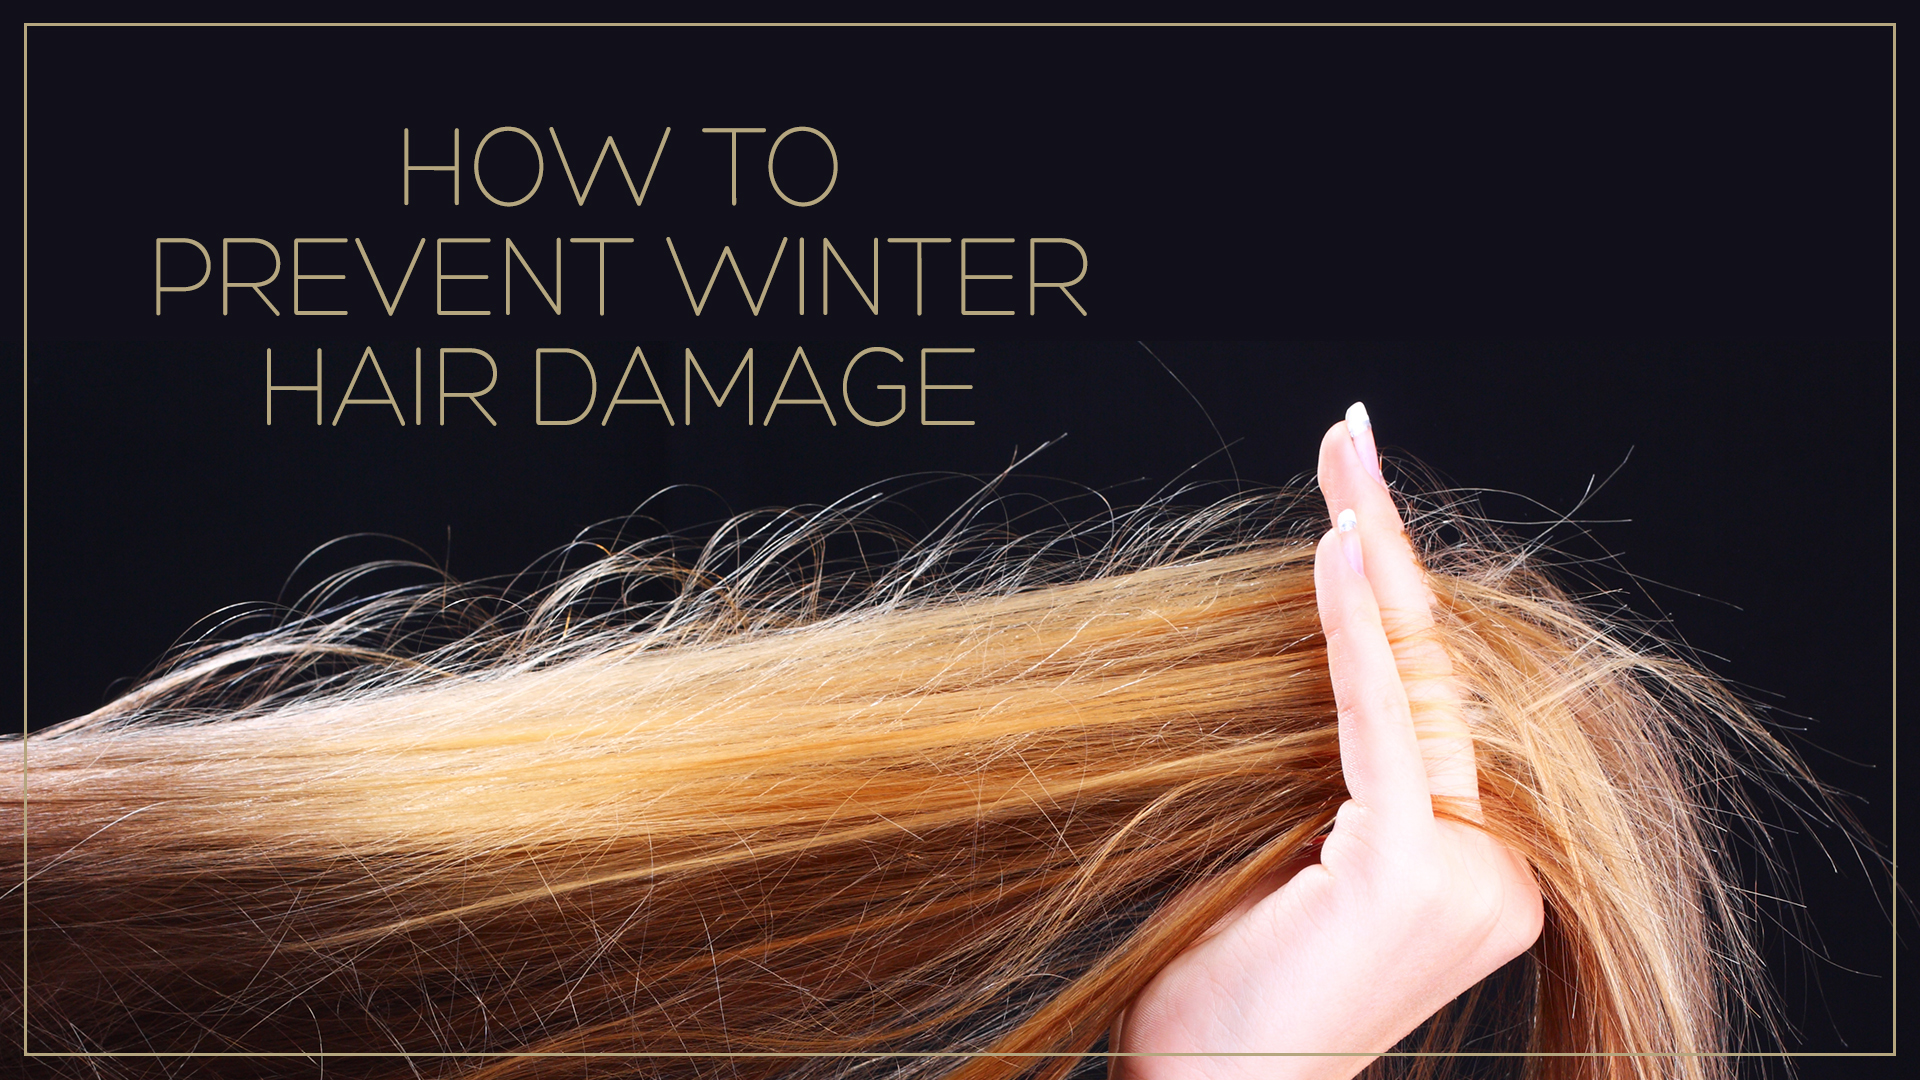 How to prevent winter hair damage